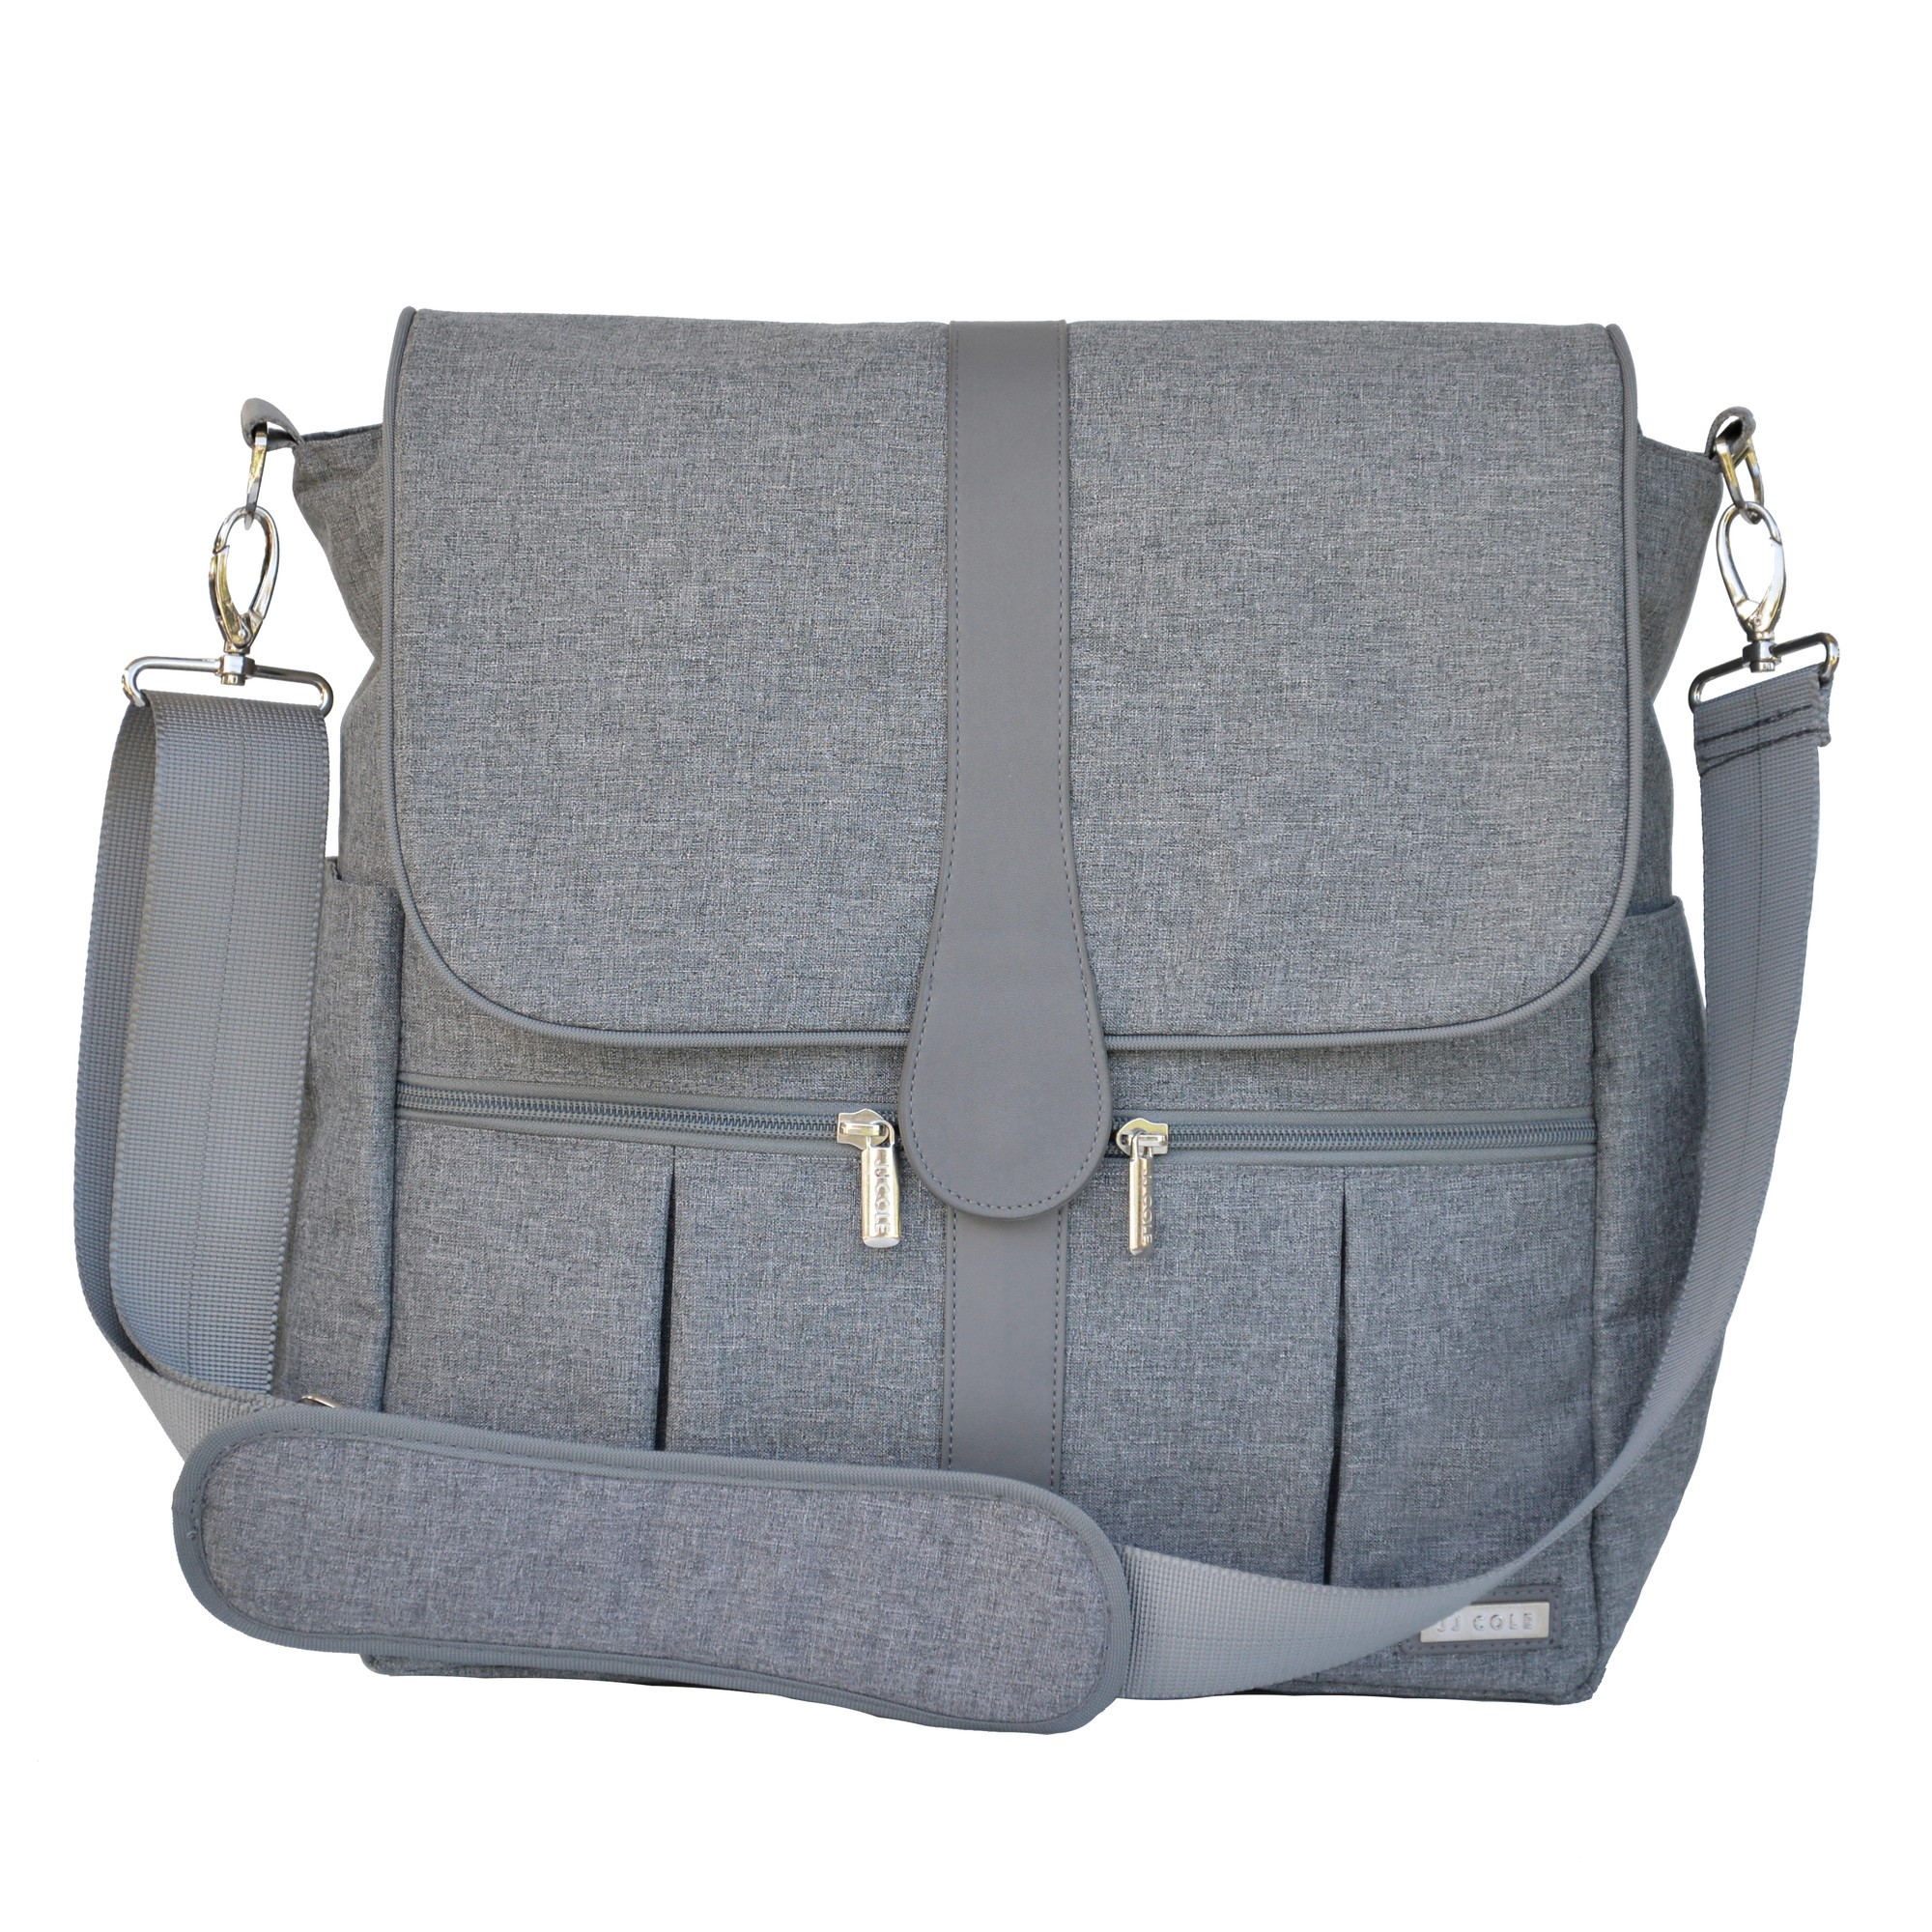 JJ COLE Backpack Diaper Bag Gray Heather by JJ Cole